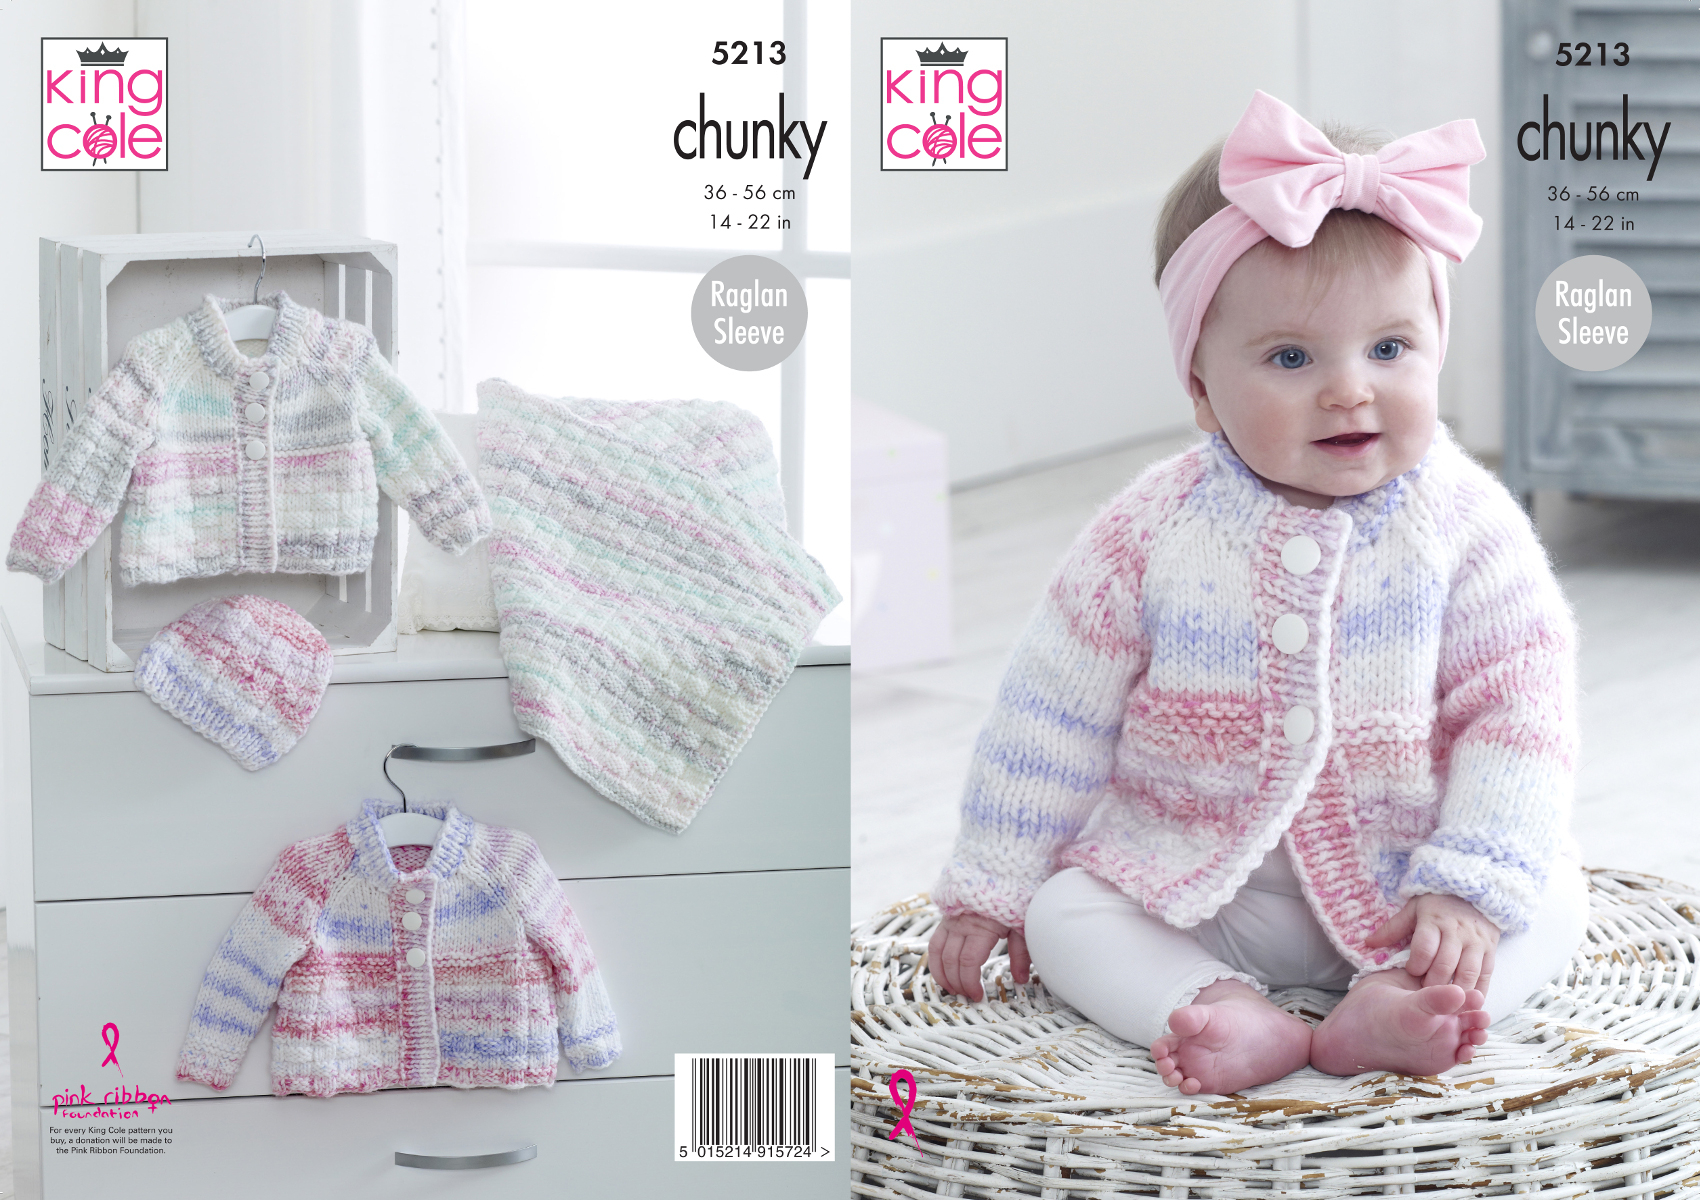 Baby Girl Blanket Knitting Patterns Details About Chunky Knitting Pattern King Cole Ba Raglan Sleeve Cardigans Hat Blanket 5213